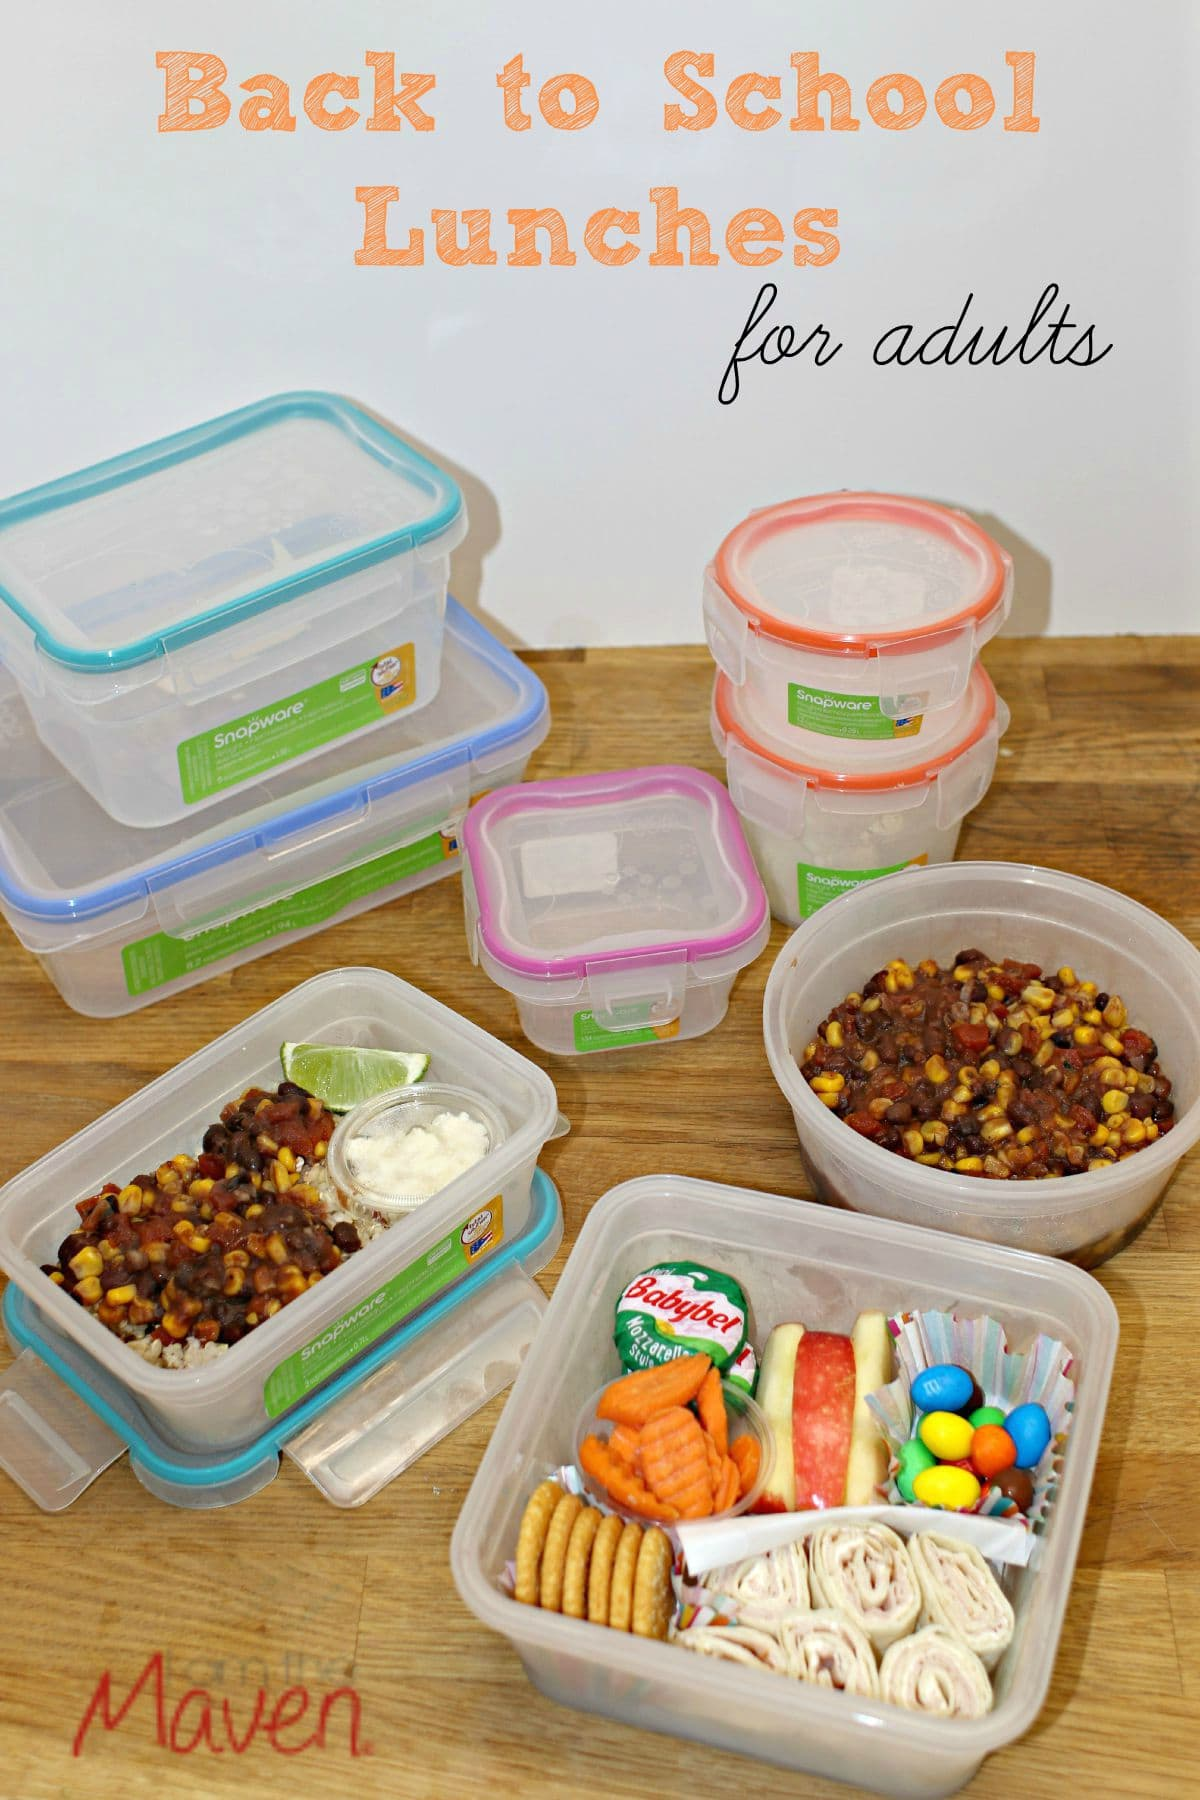 Forget the kids, what about back to school lunches for adults? AD